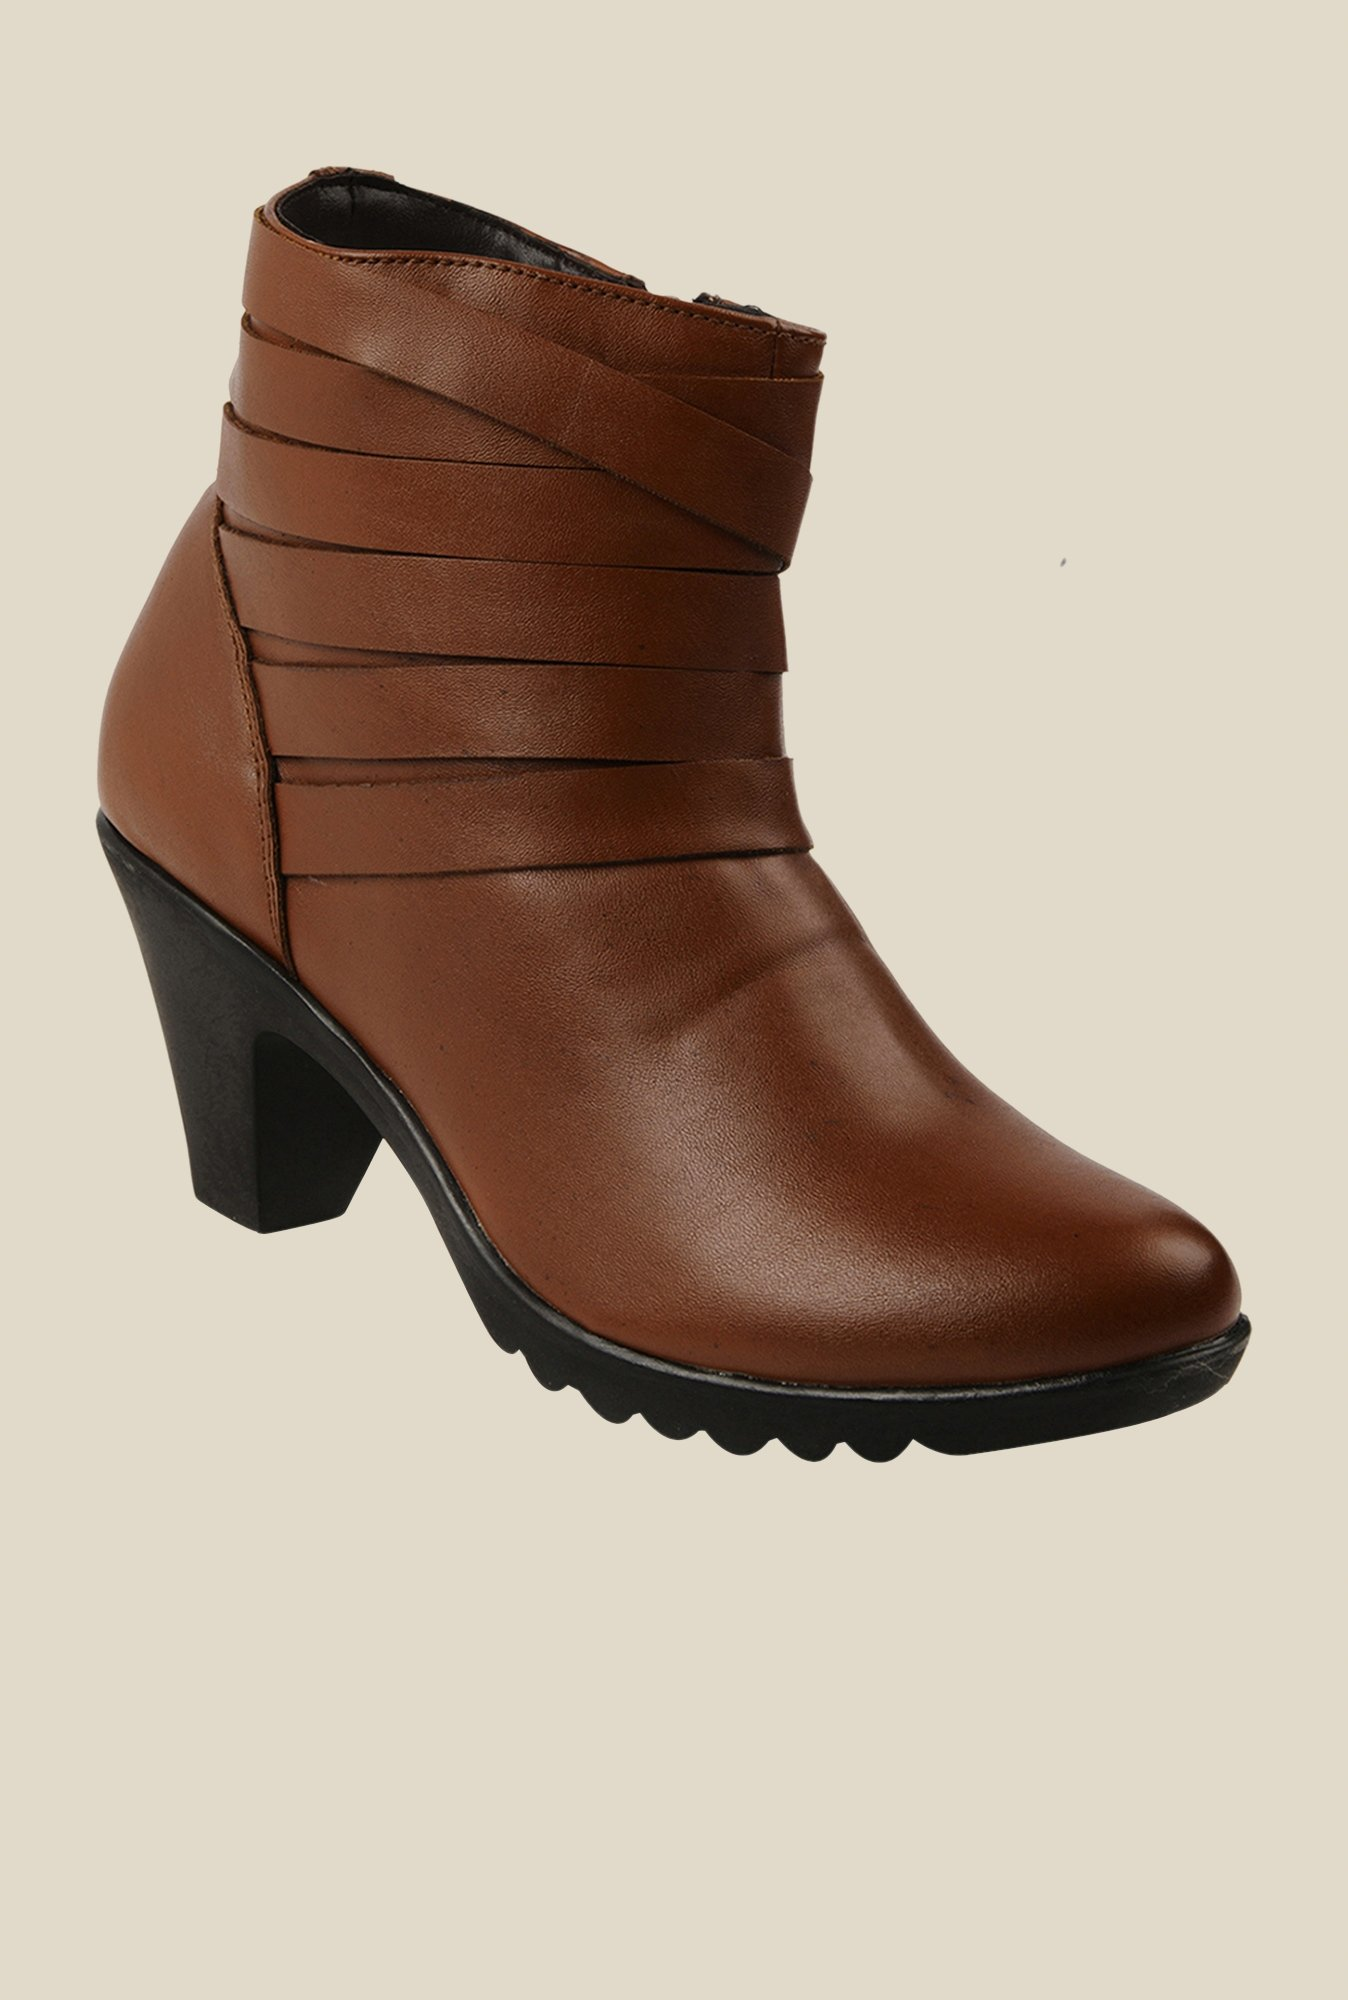 Bruno Manetti Brown Block Heeled Booties